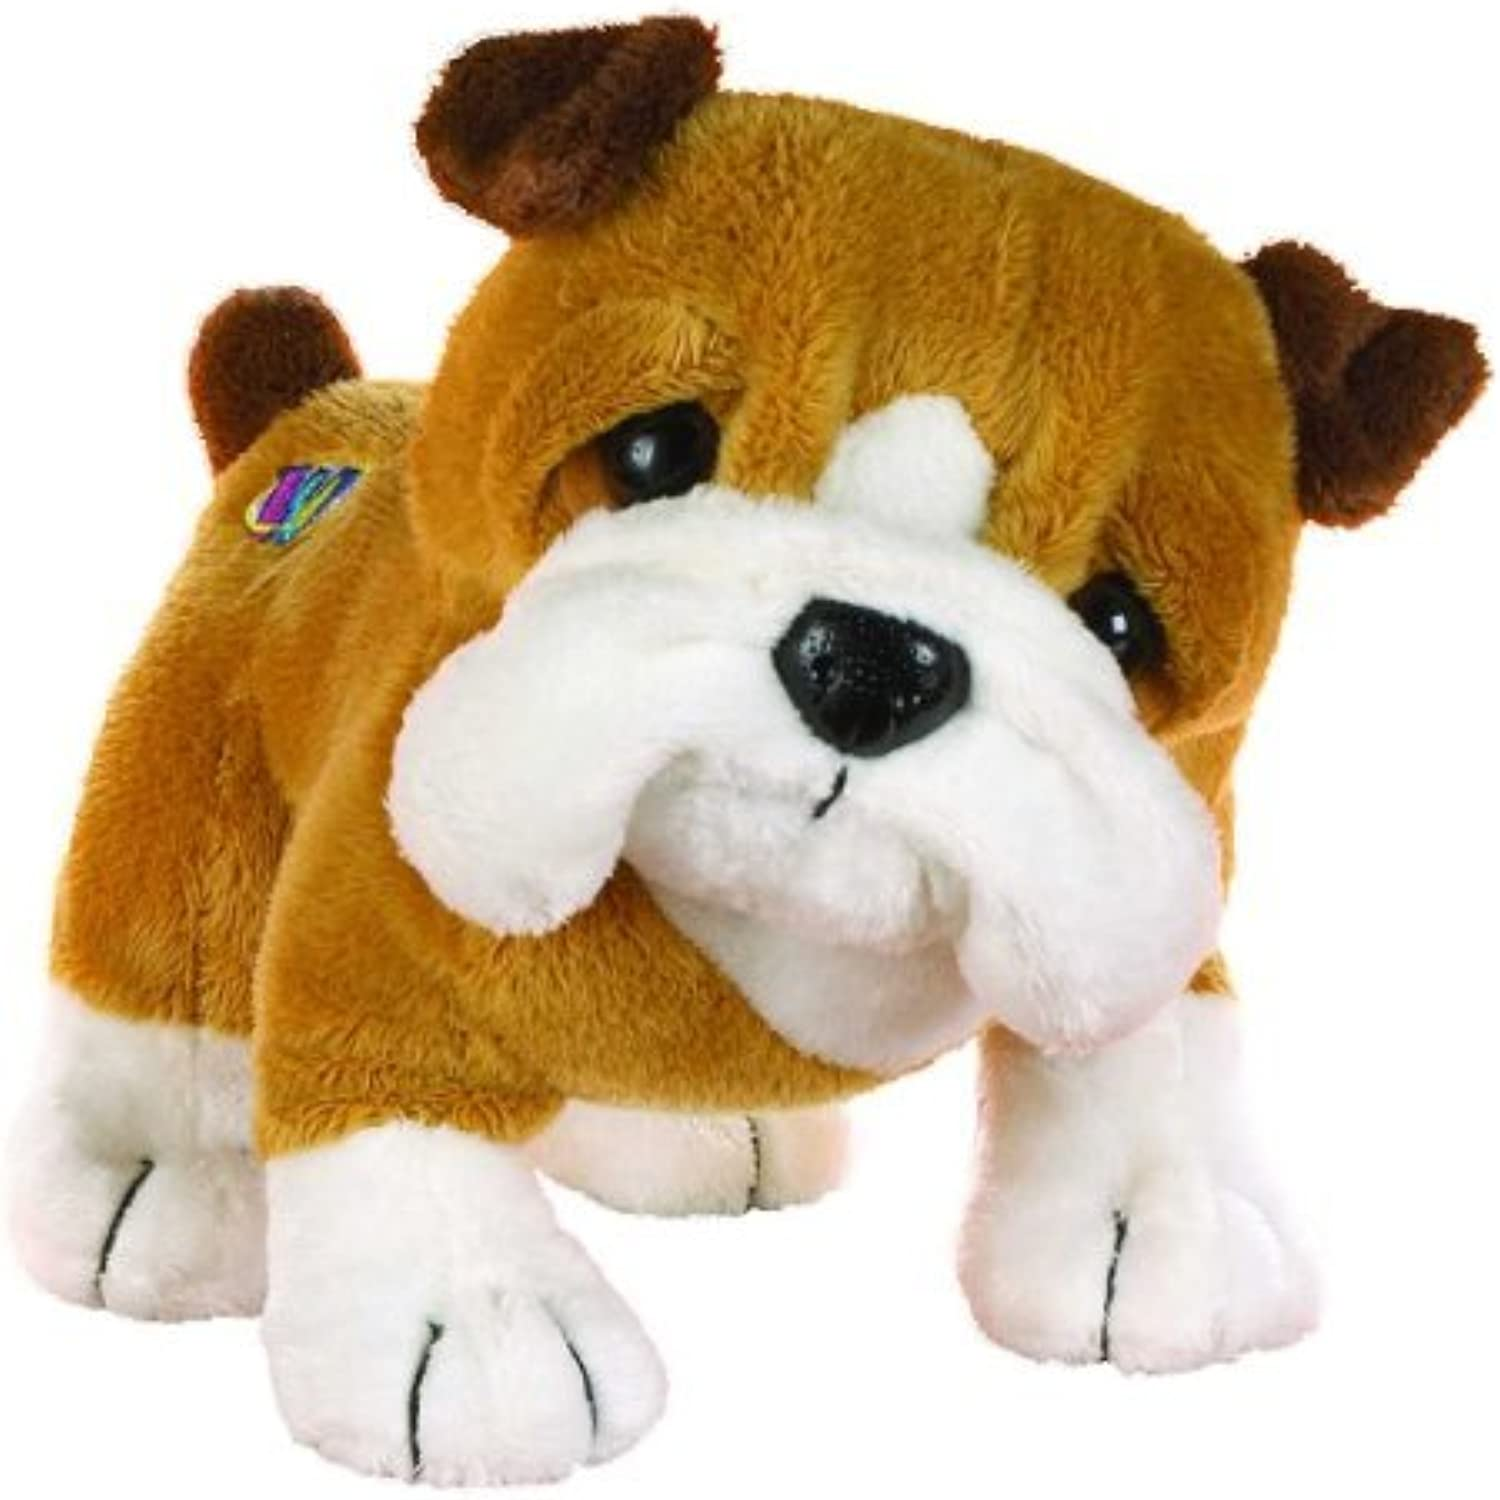 venta caliente Webkinz Bulldog Bulldog Bulldog Plush Juguete with Sealed Adoption Code by Webkinz  soporte minorista mayorista